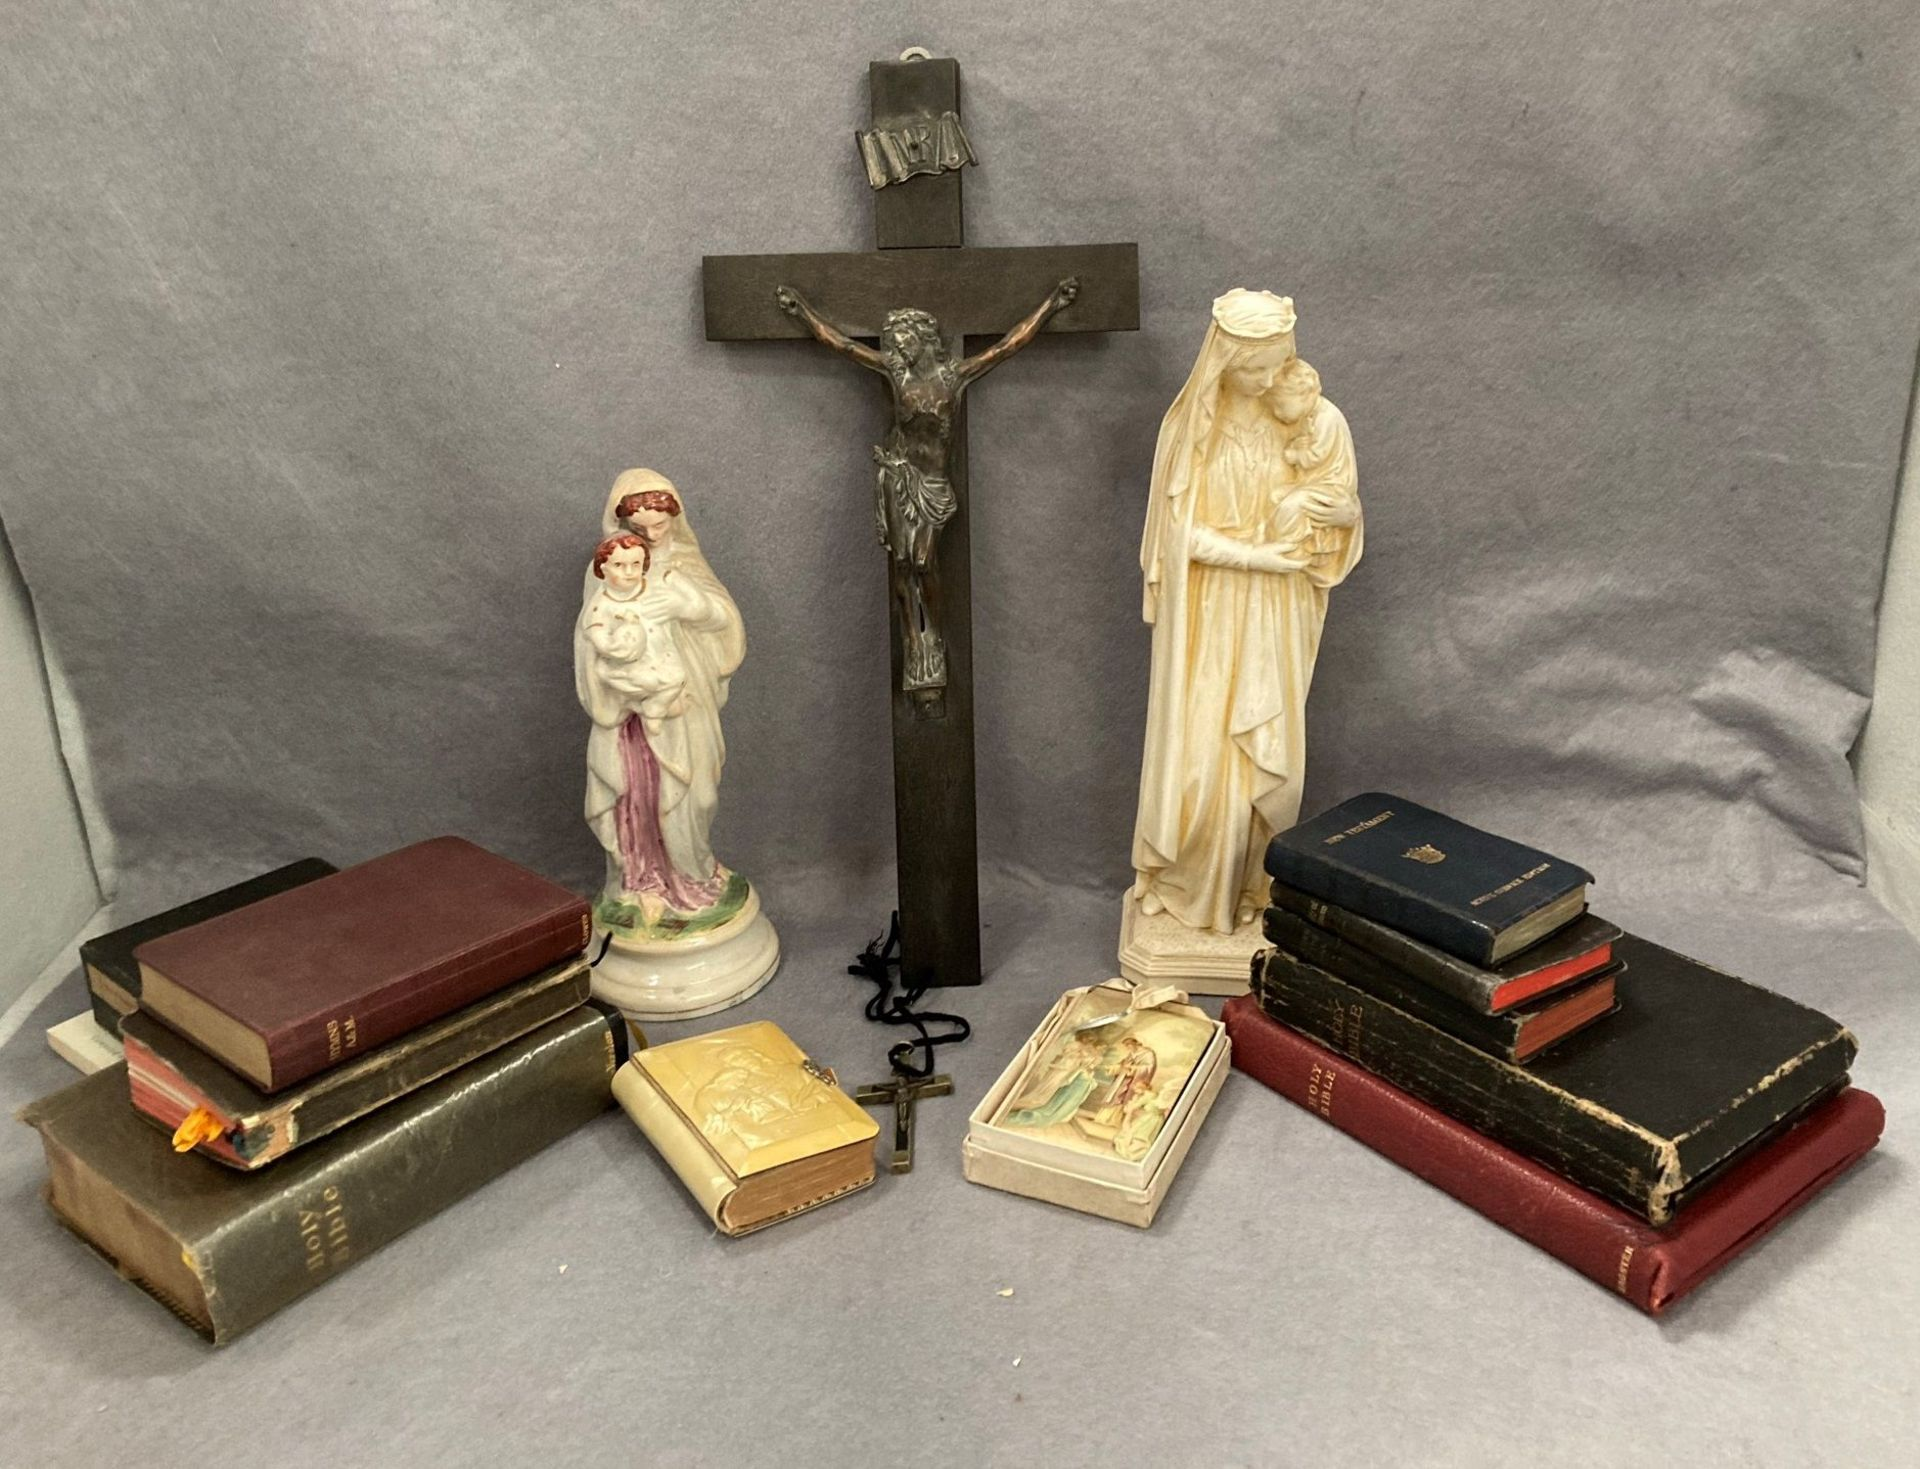 Contents to tray a quantity of Holy Bibles,